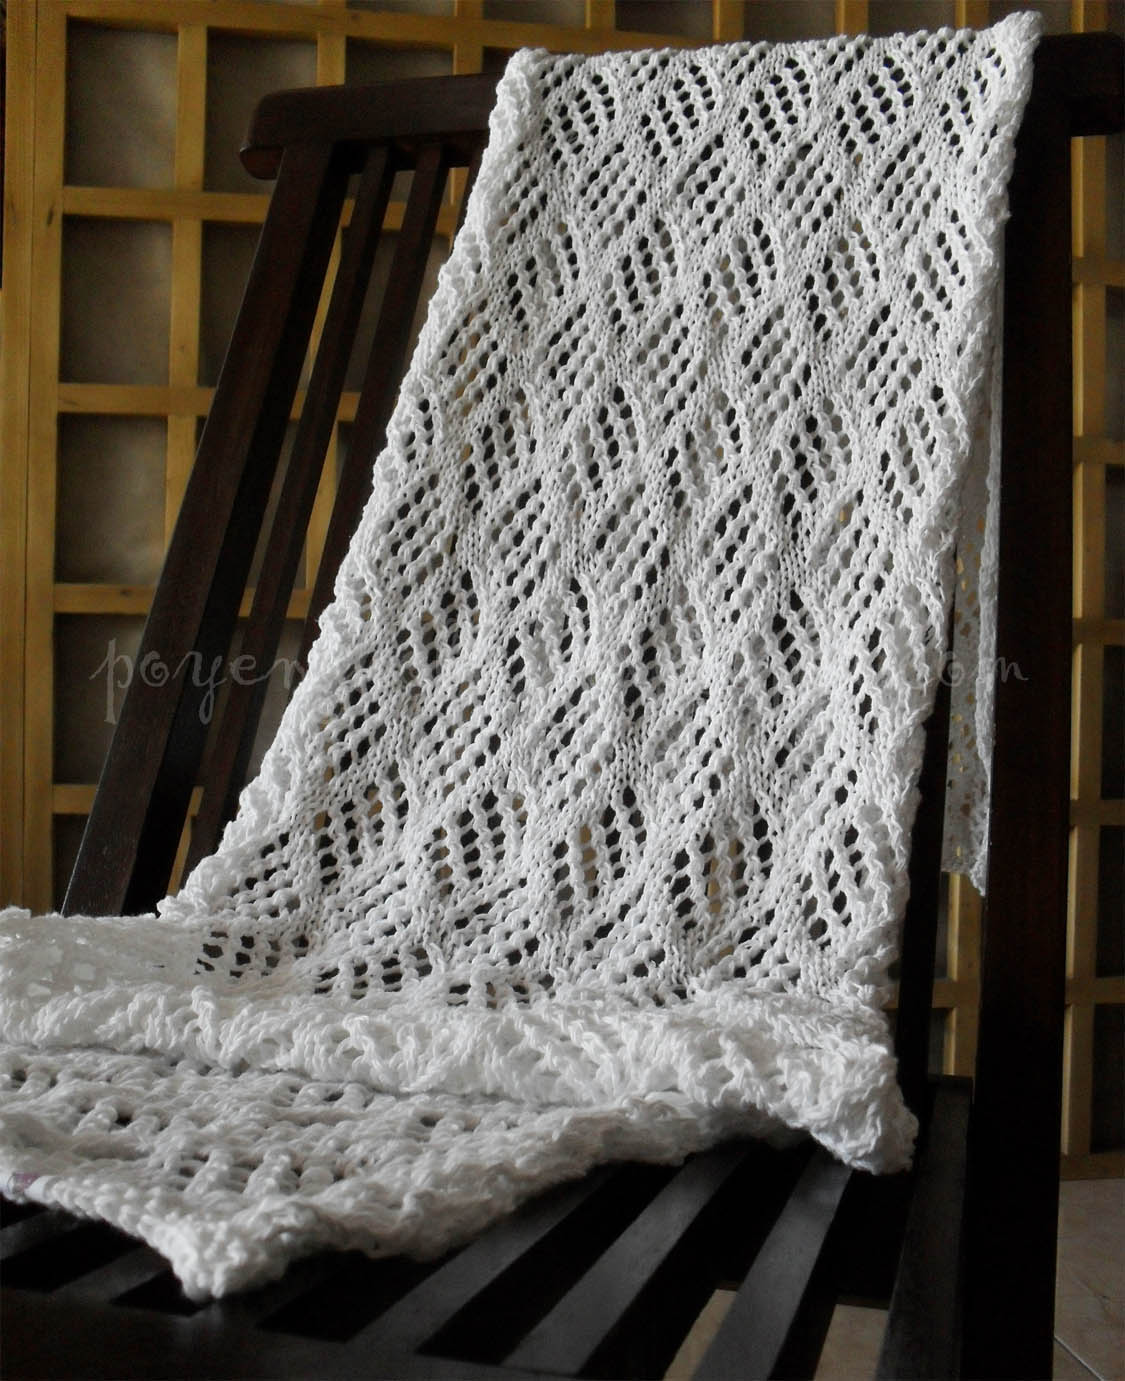 Free Lace Knitting Patterns : Ajeng Belajar Merajut: Rajut Free Knitting Pattern ...